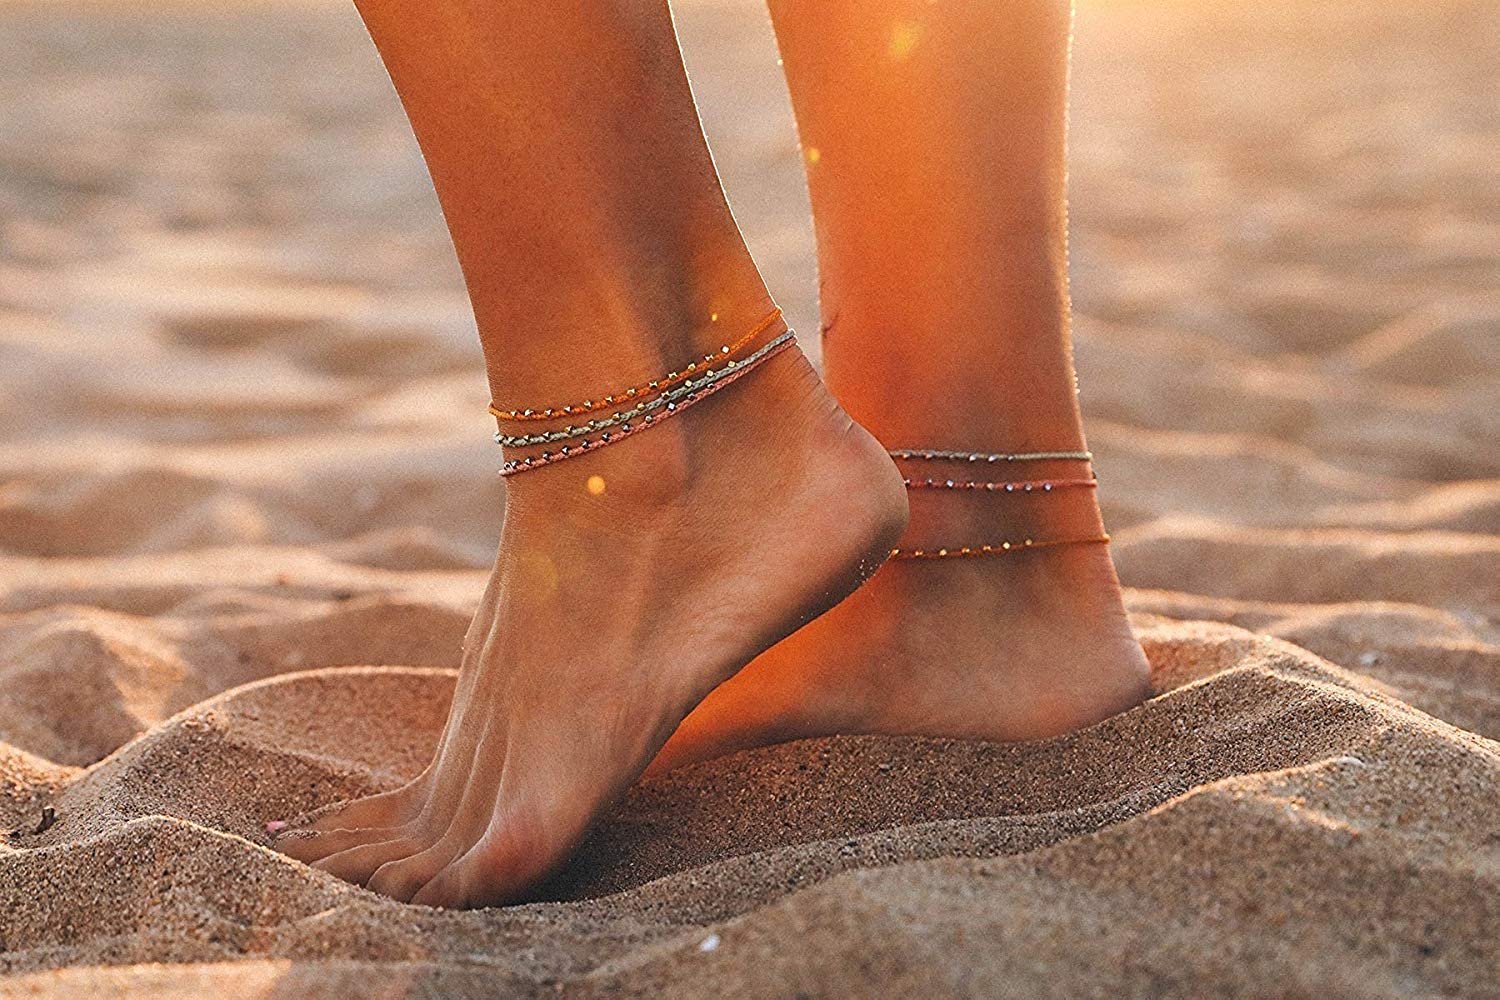 Pura Vida Silver Stitched Beaded Anklet in Pink or Light Green Adjustable Band Wax Coated String